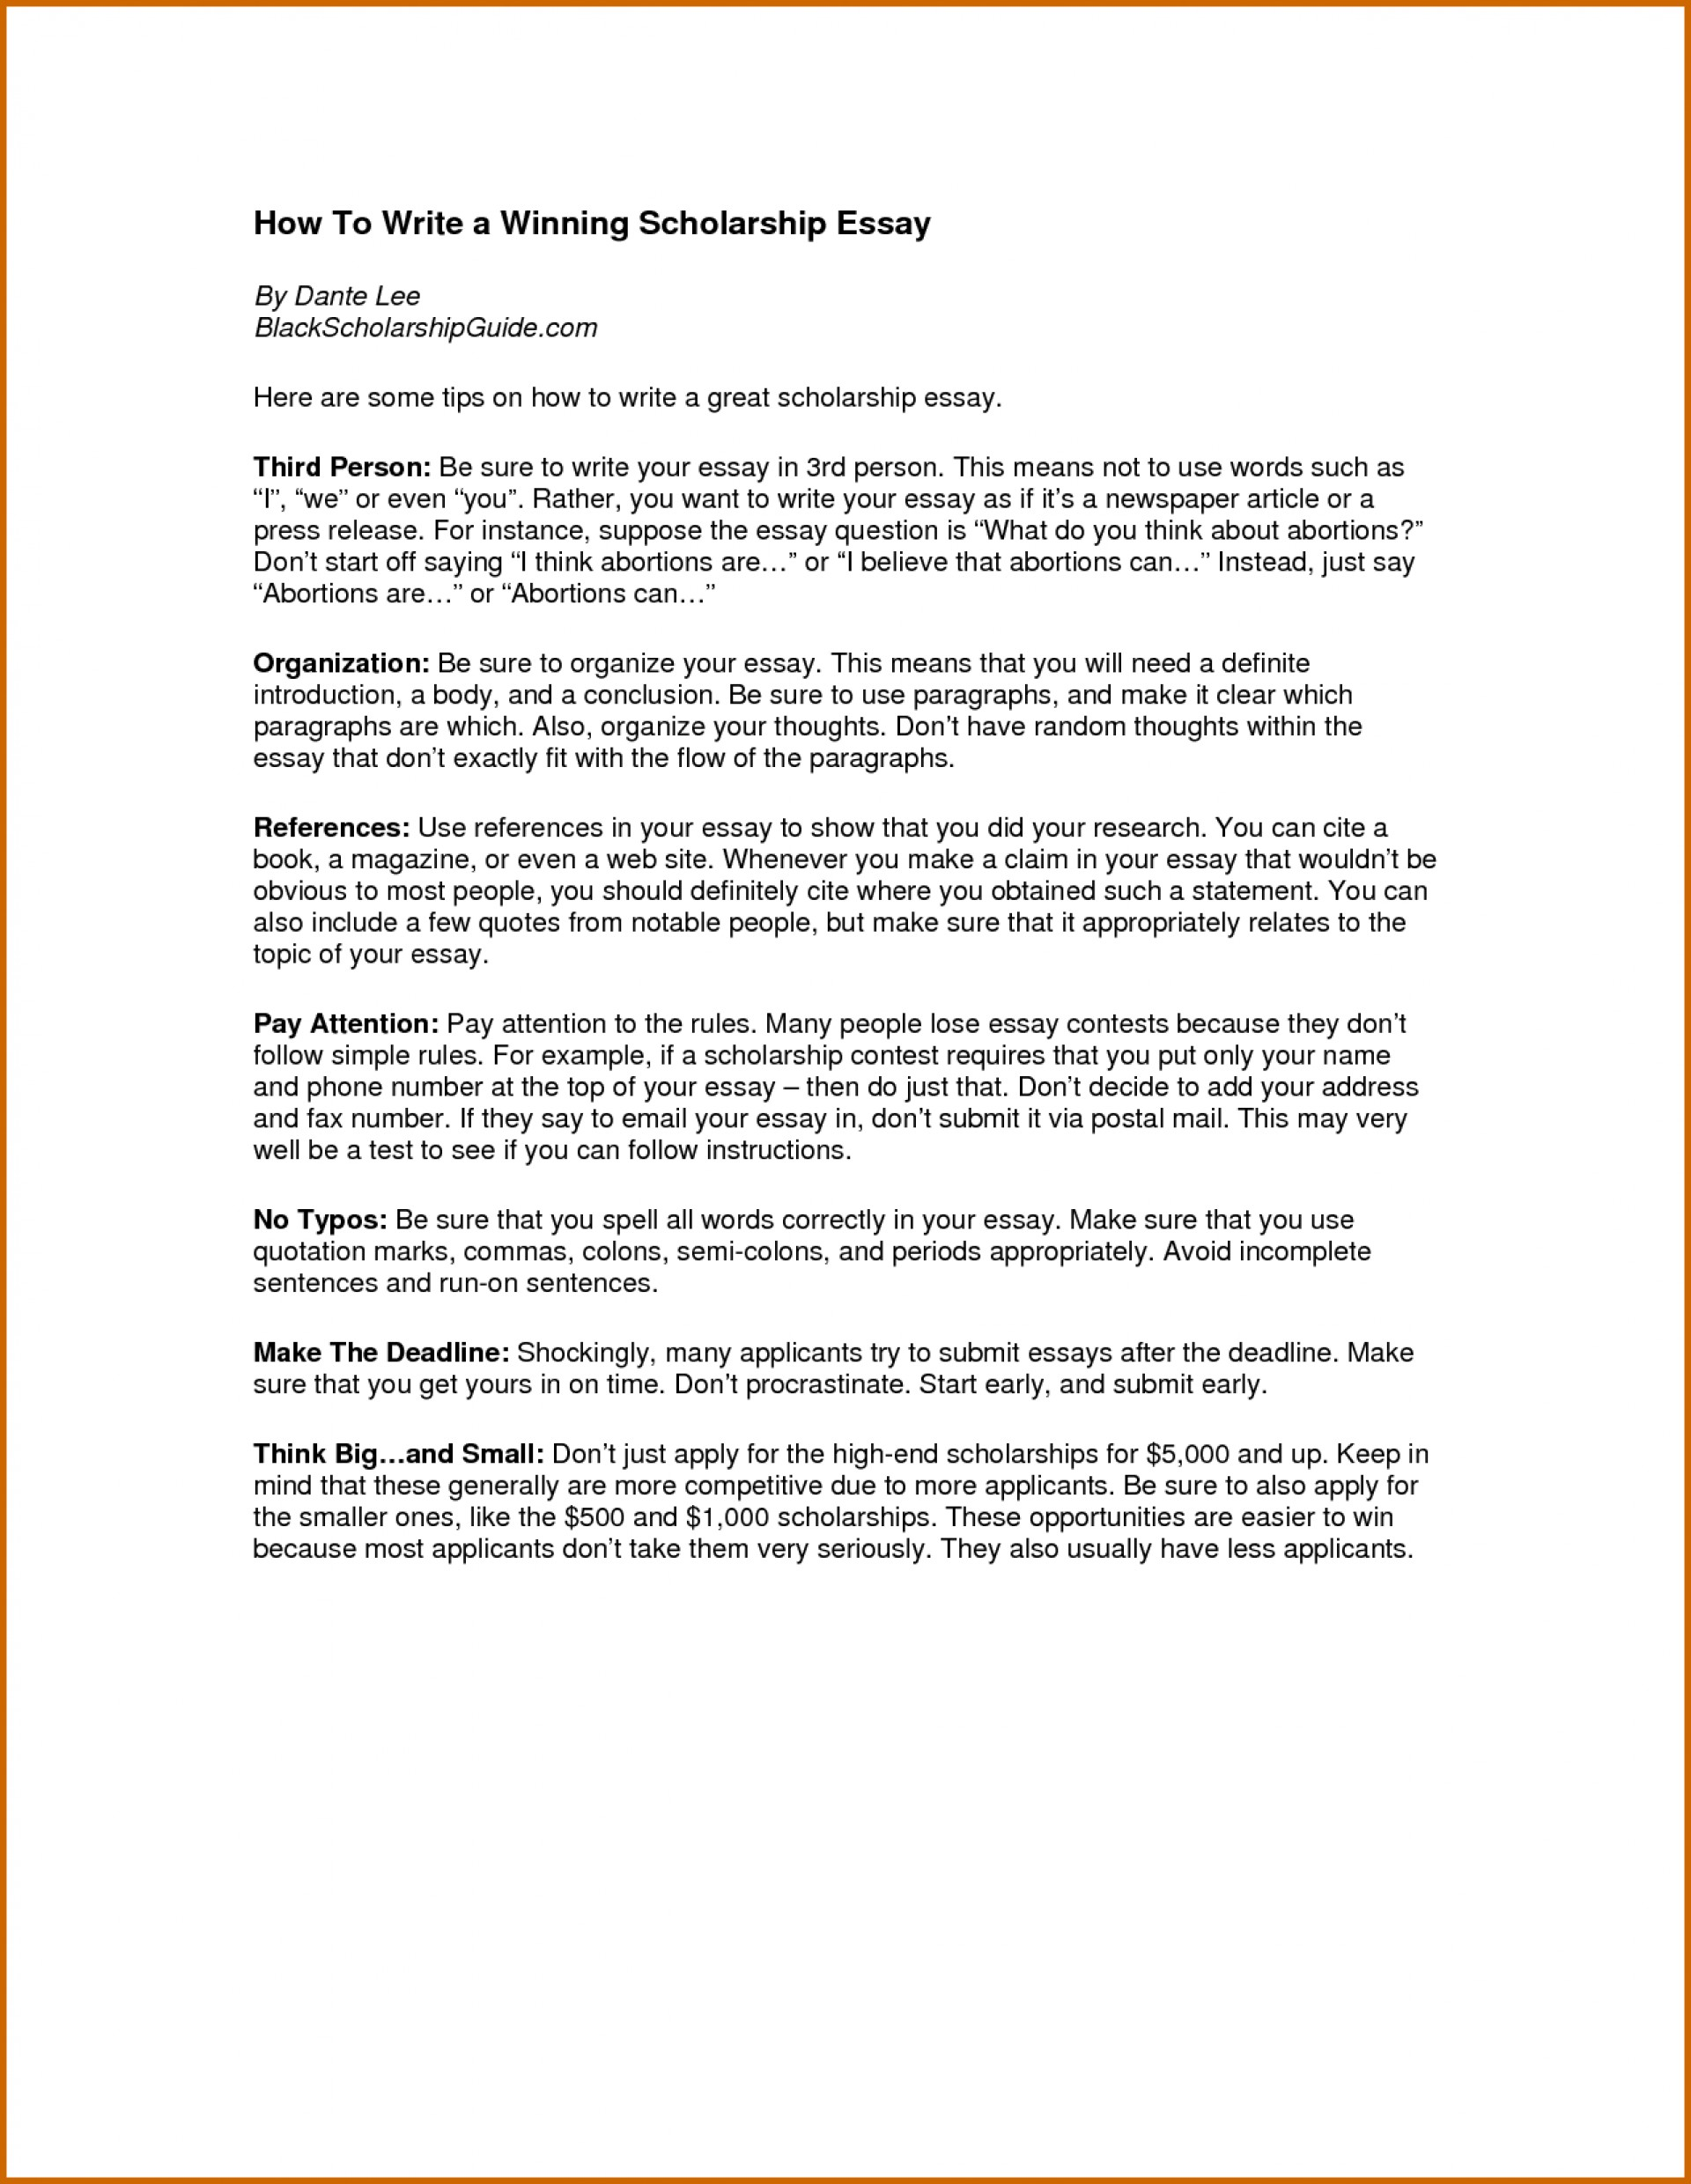 005 Essay Example Help Writing Essays For Scholarships Com Need I To Write An Fast How Scholarship Have Due Tomorrow In Spanish About Myself Hours One Night Motivation What Does Outstanding The Word Mean Paper Ese 1920